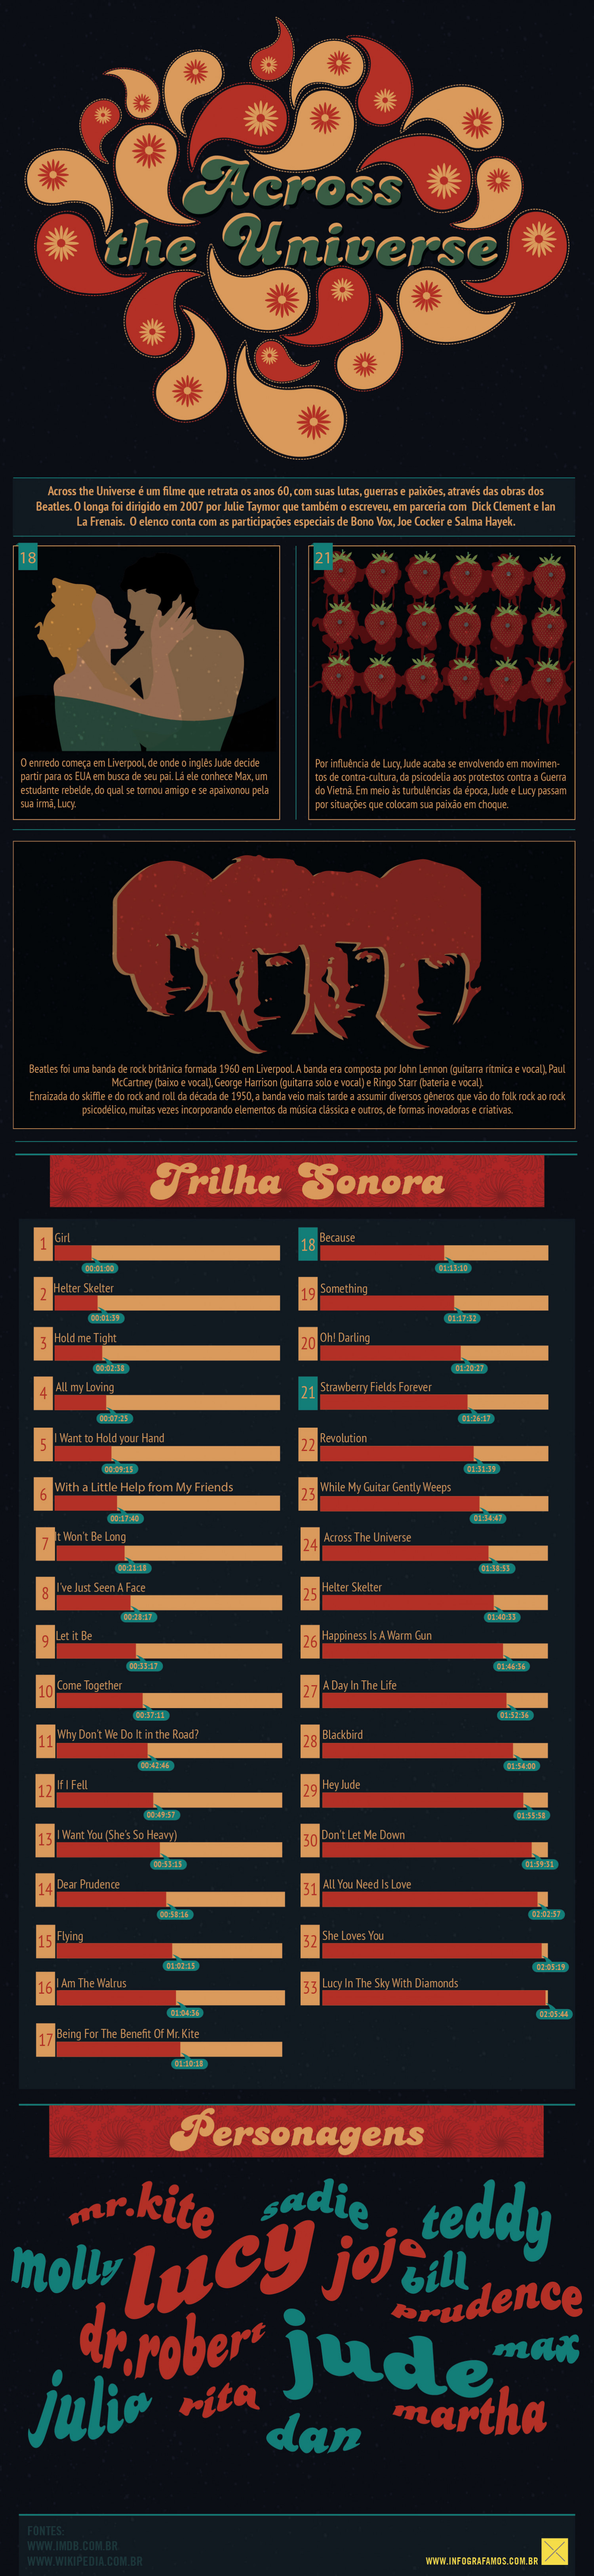 Across the Universe Infographic